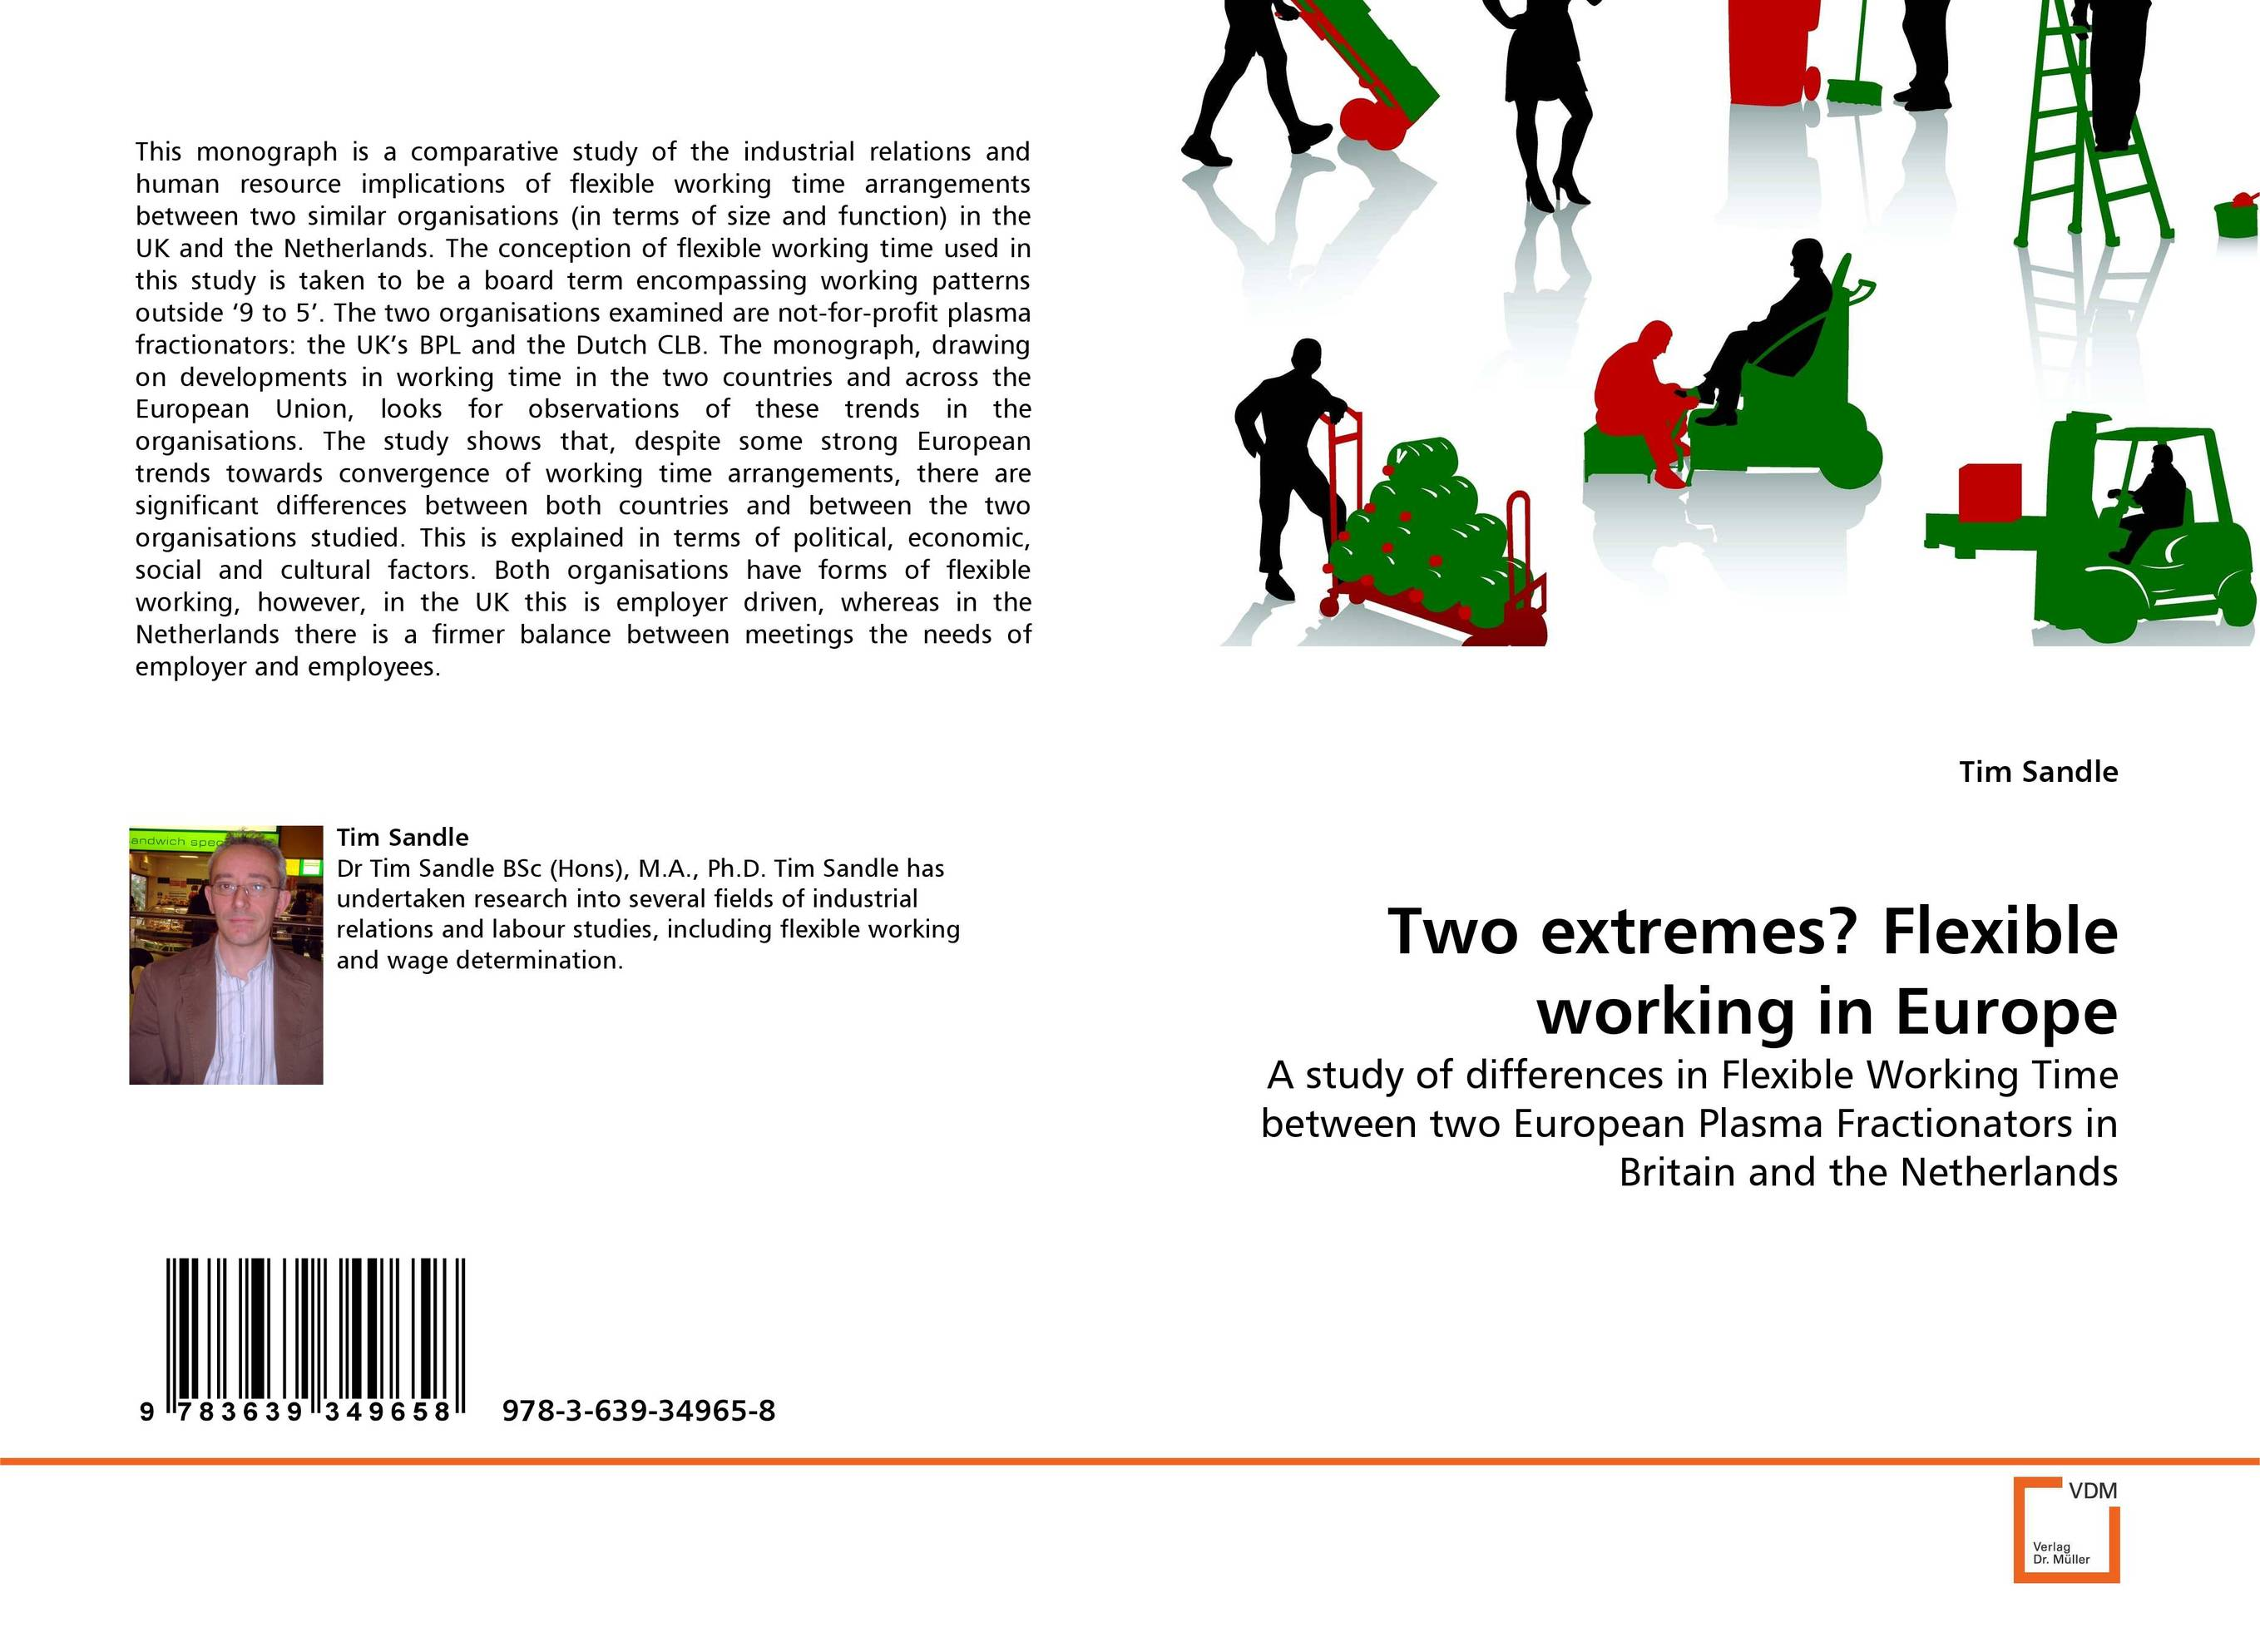 Two extremes? Flexible working in Europe